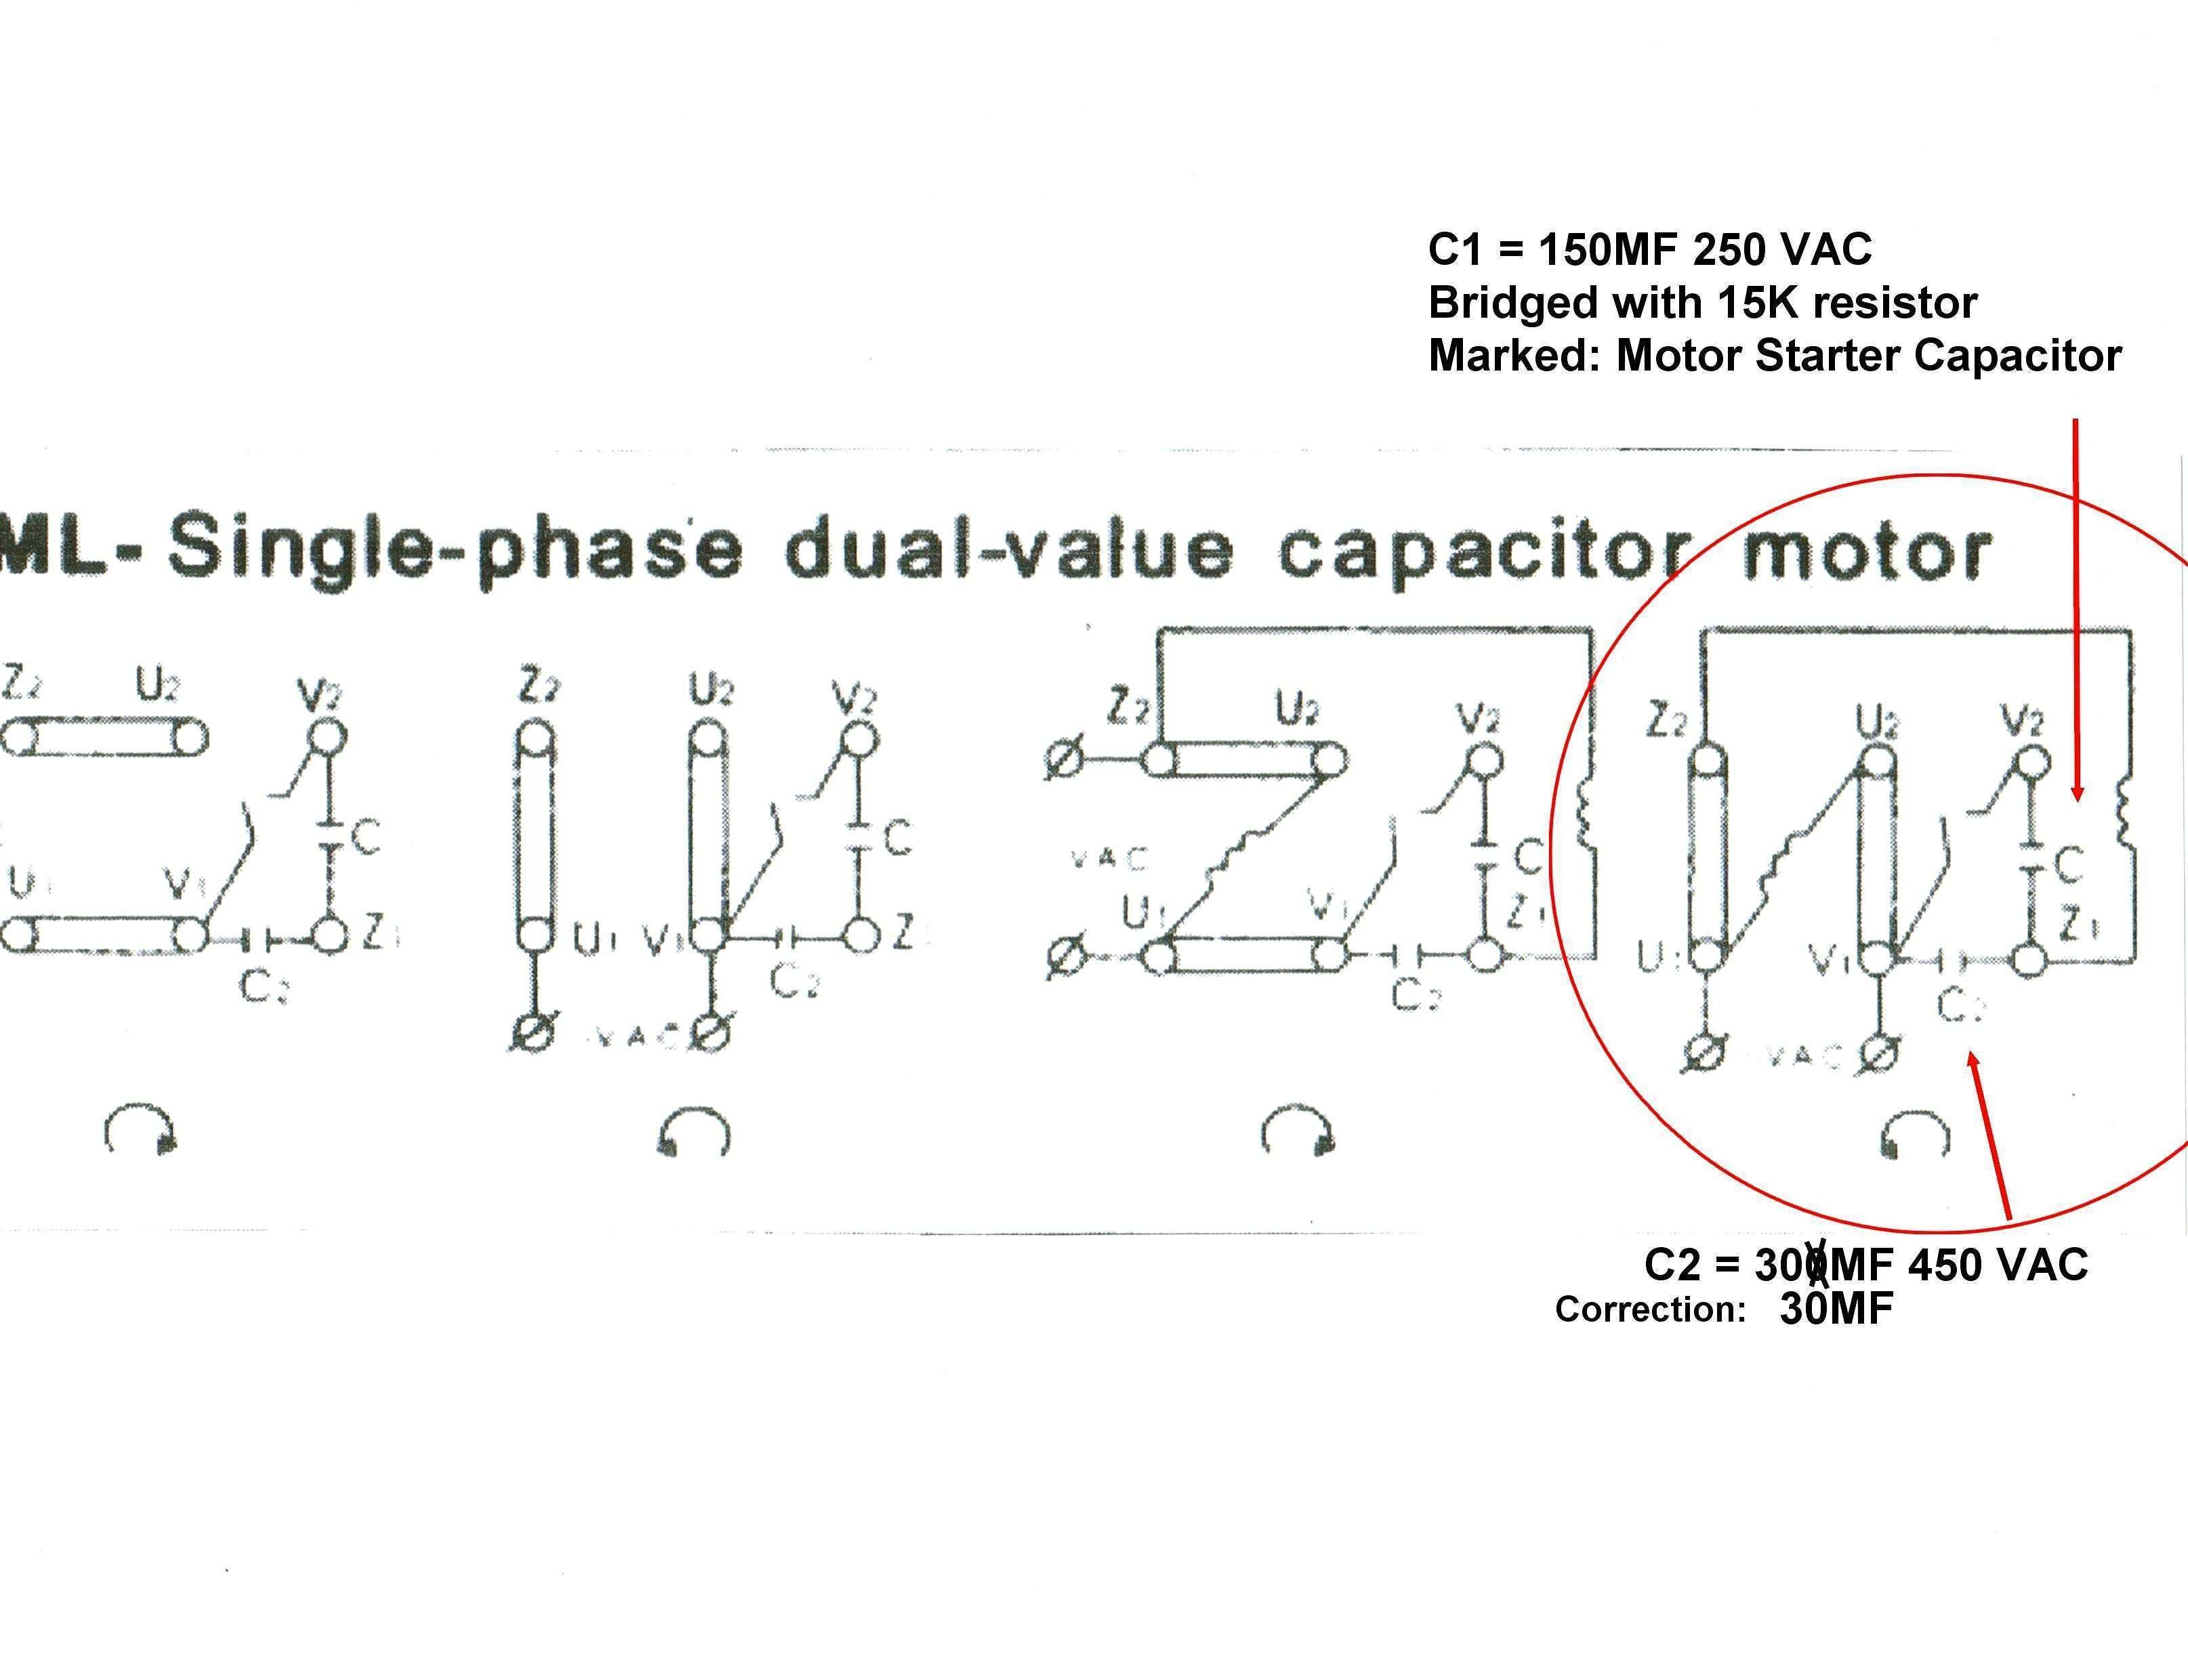 Wiring Diagram Single Phase Motor 6 Lead - Wiring Diagram Host on electric motor wiring diagrams, motor overload wiring diagrams, capacitor start motor diagrams, single phase capacitor motor diagrams, motor run capacitor wiring, induction motor wiring diagrams, motor starter wiring diagrams, baldor ac motor diagrams, single phase motor wiring diagrams, dayton capacitor start wiring diagrams, motor heater wiring diagrams, wound rotor motor wiring diagrams,